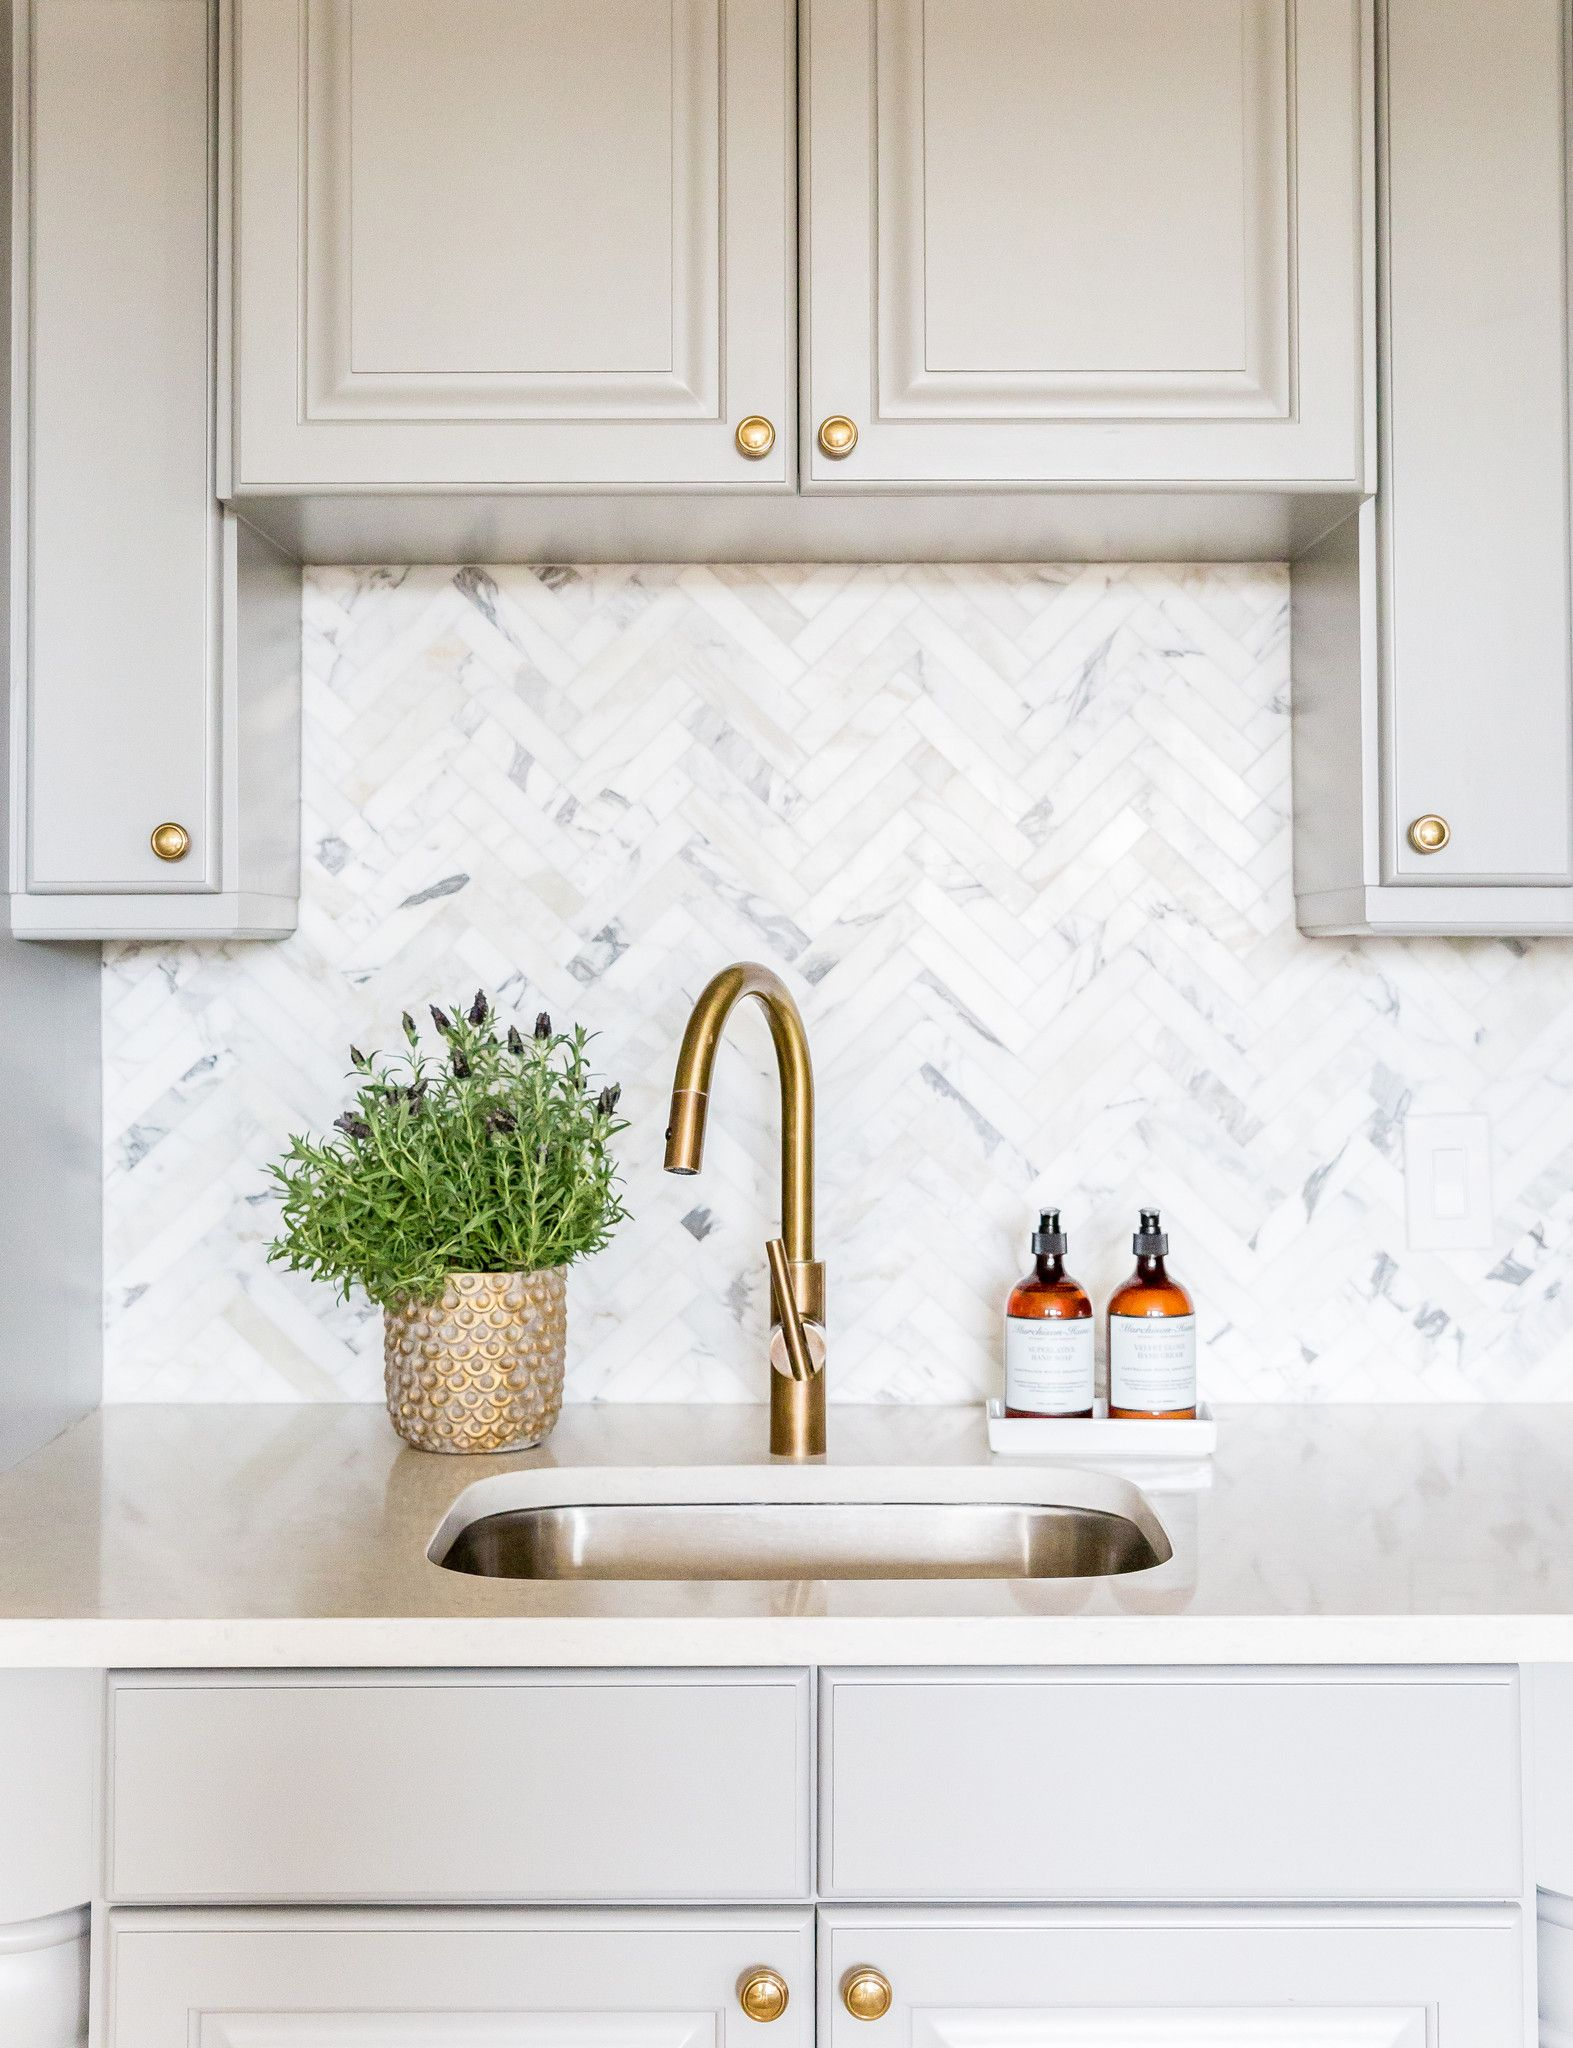 Murchison Hume Hand Duo Kitchen Marble Kitchen Tiles Backsplash Kitchen Renovation